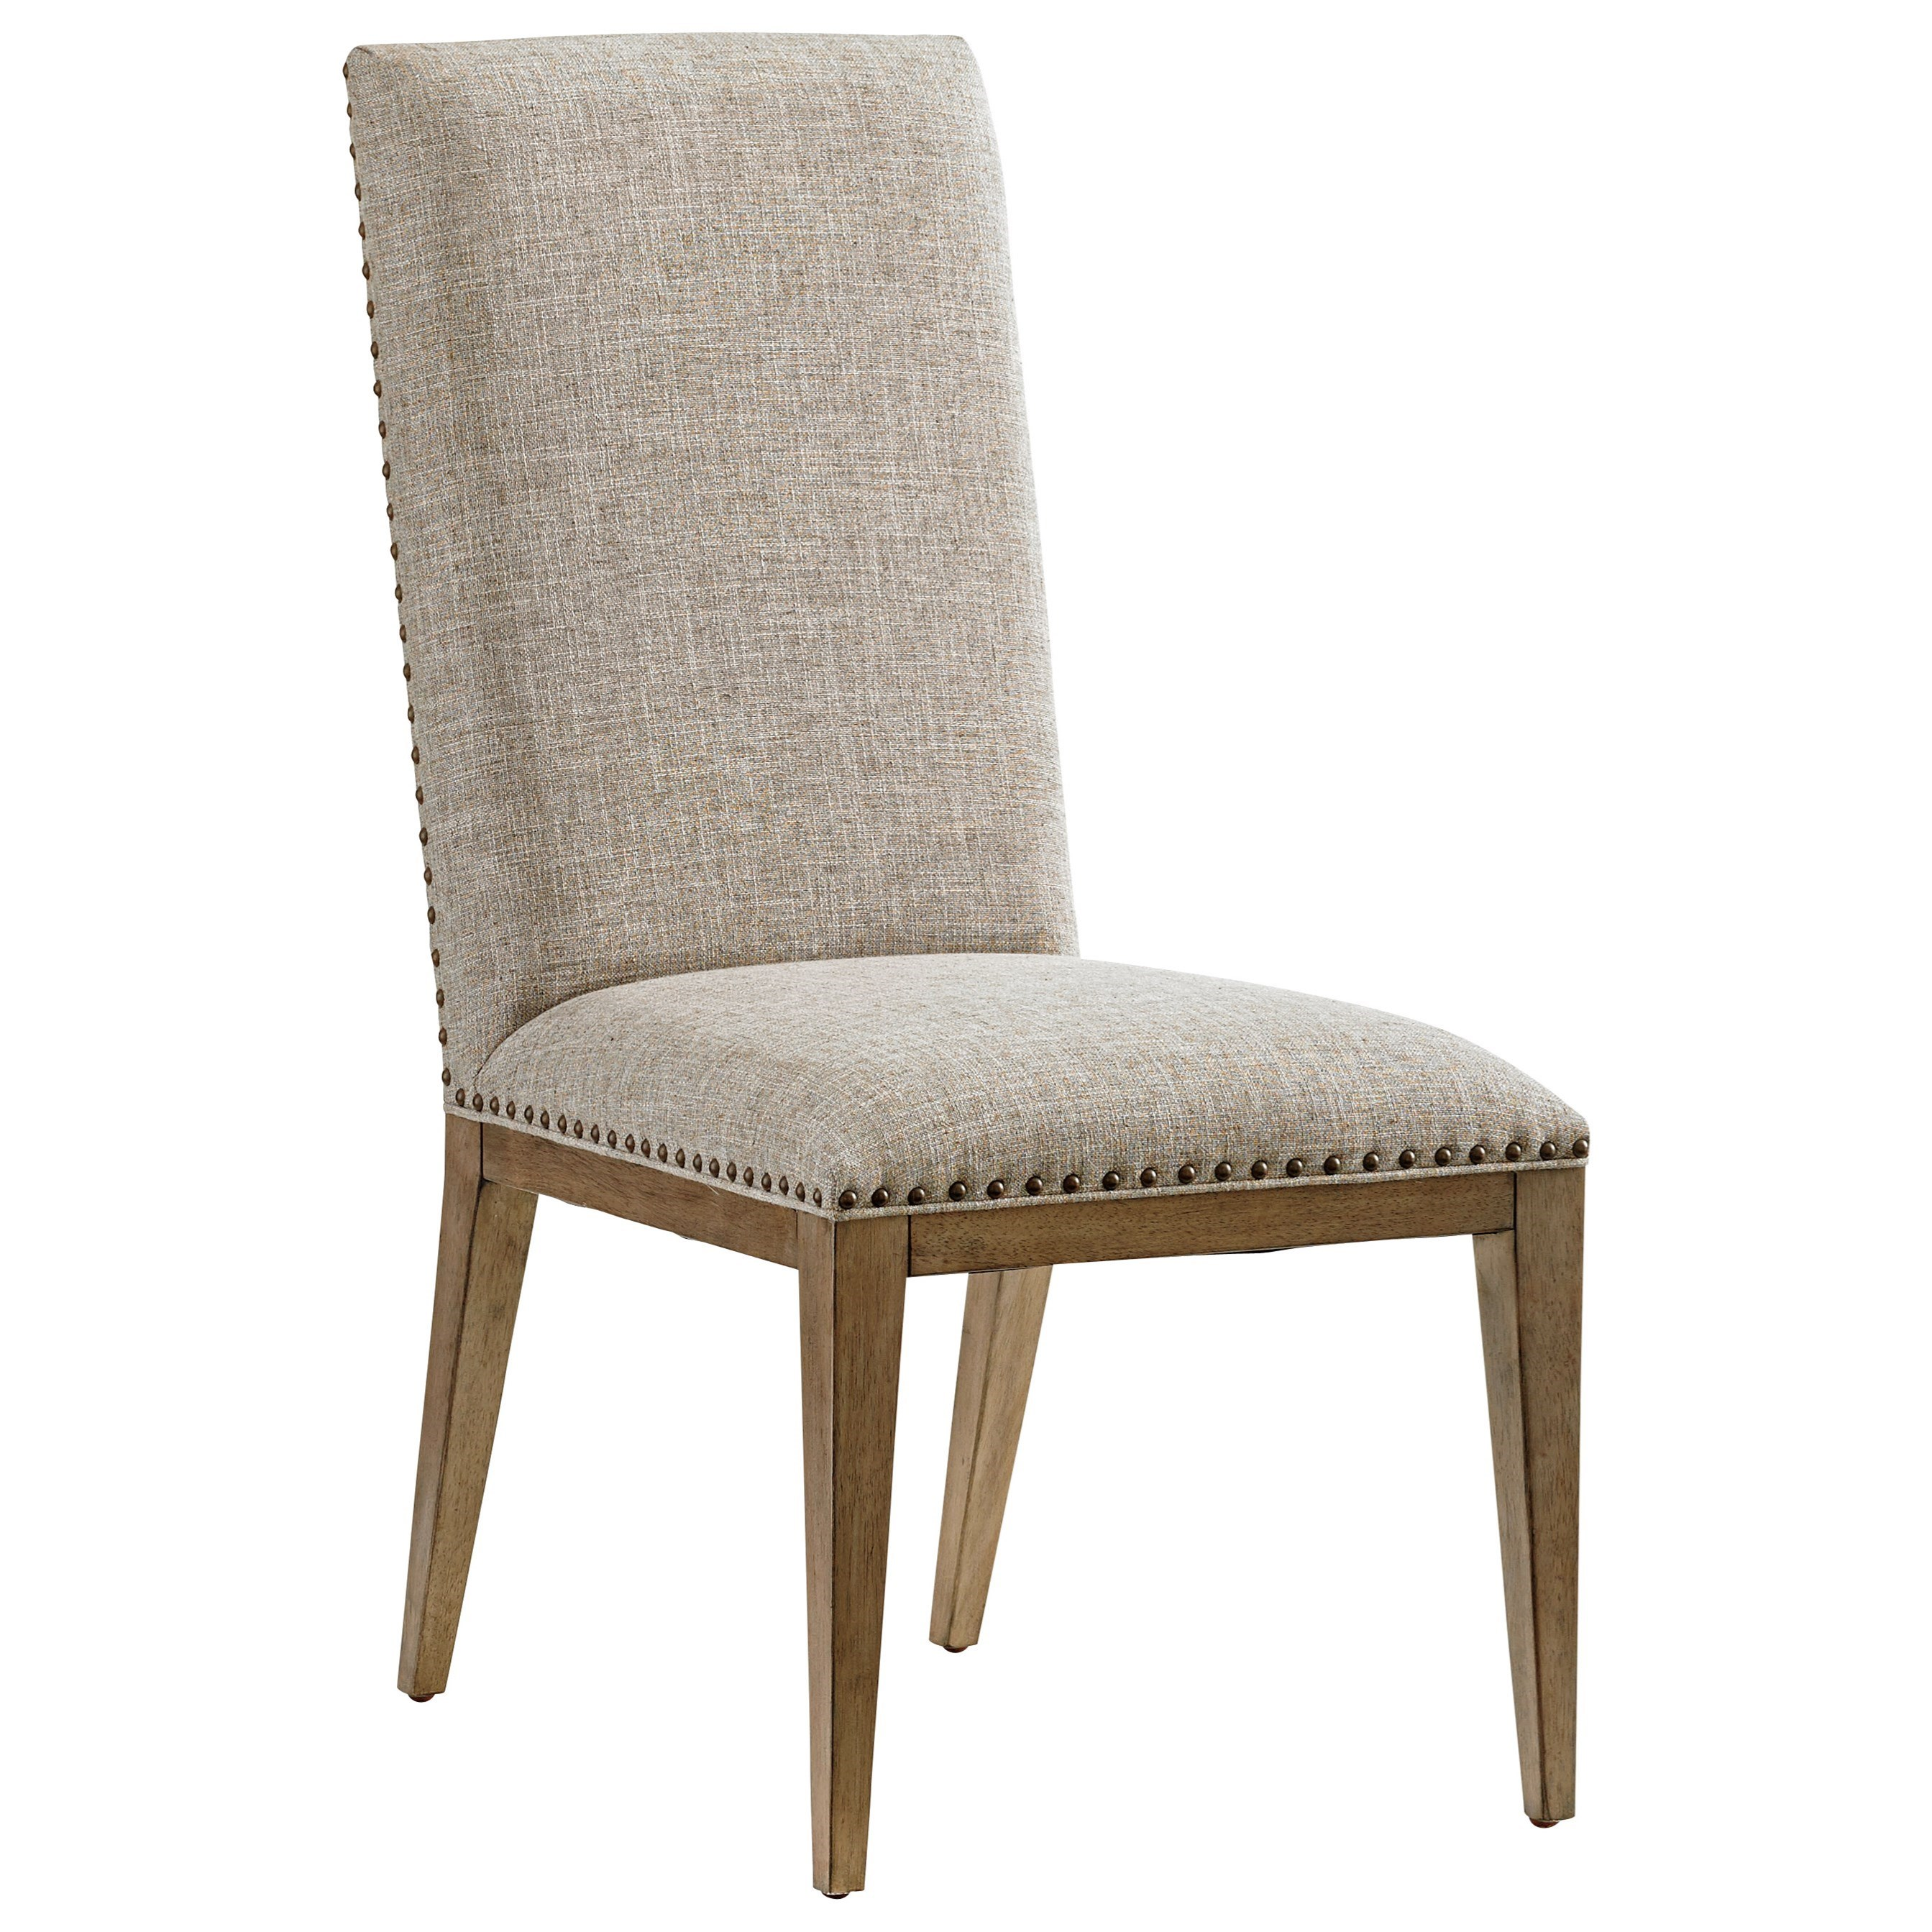 Cypress Point Devereaux Upholstered Side Chair by Tommy Bahama Home at Baer's Furniture